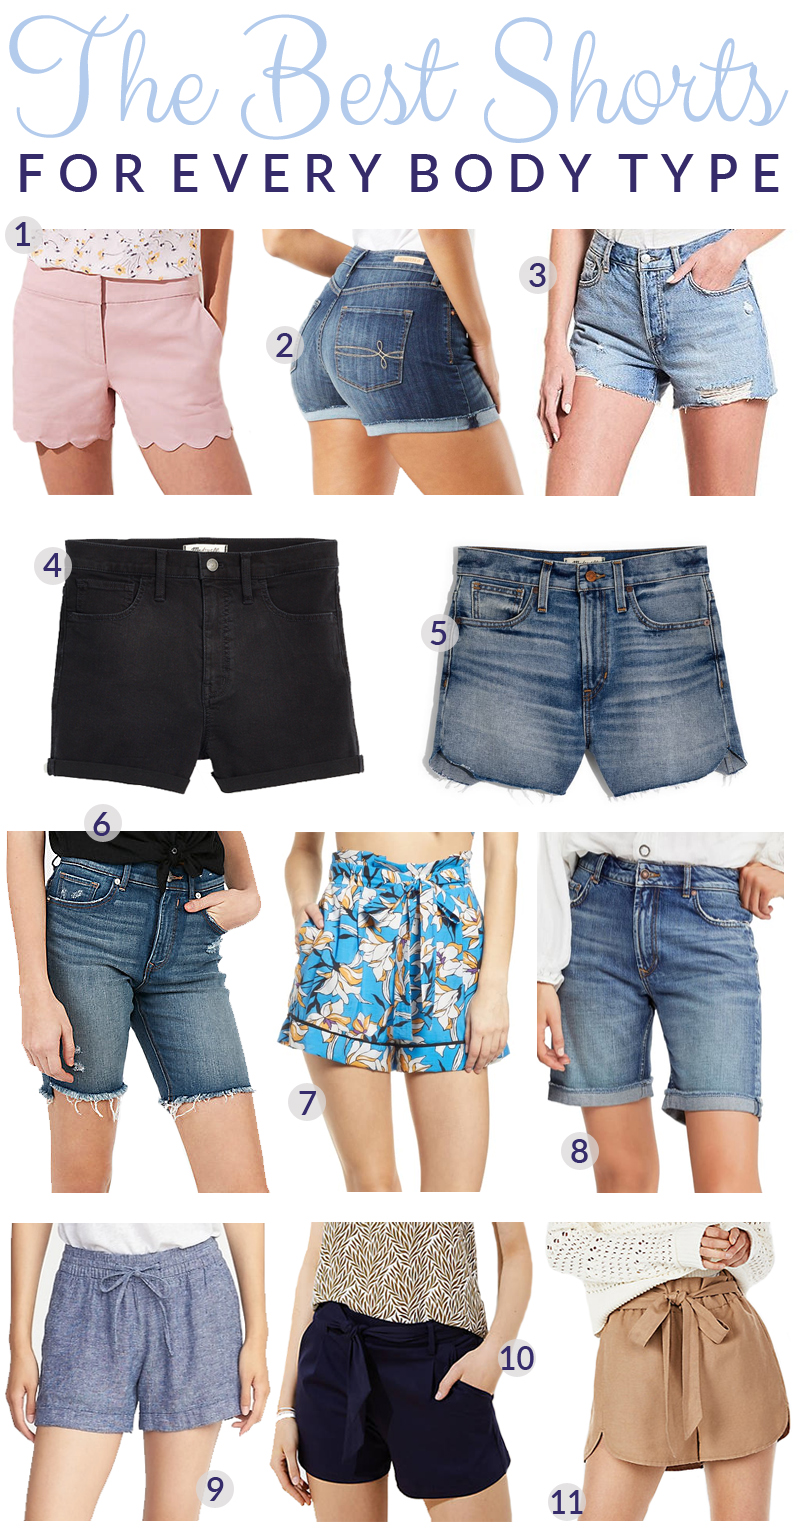 The Best Flattering Shorts for YOUR Body Type